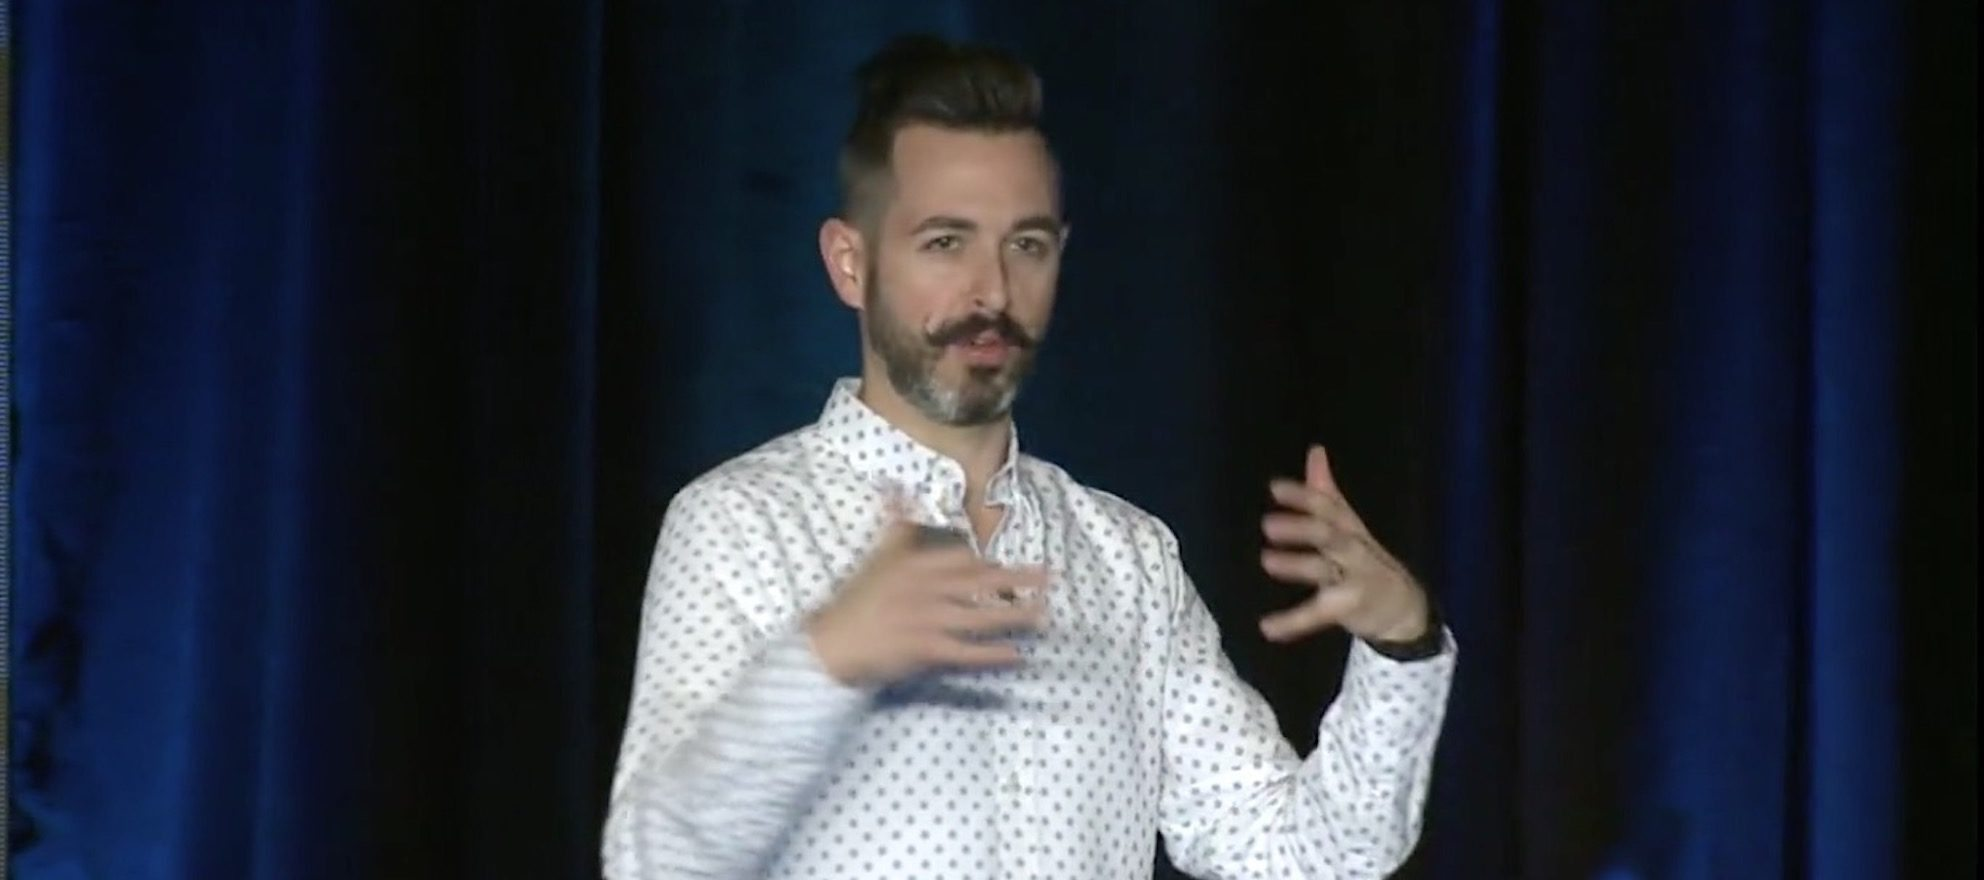 rand fishkin web traffic